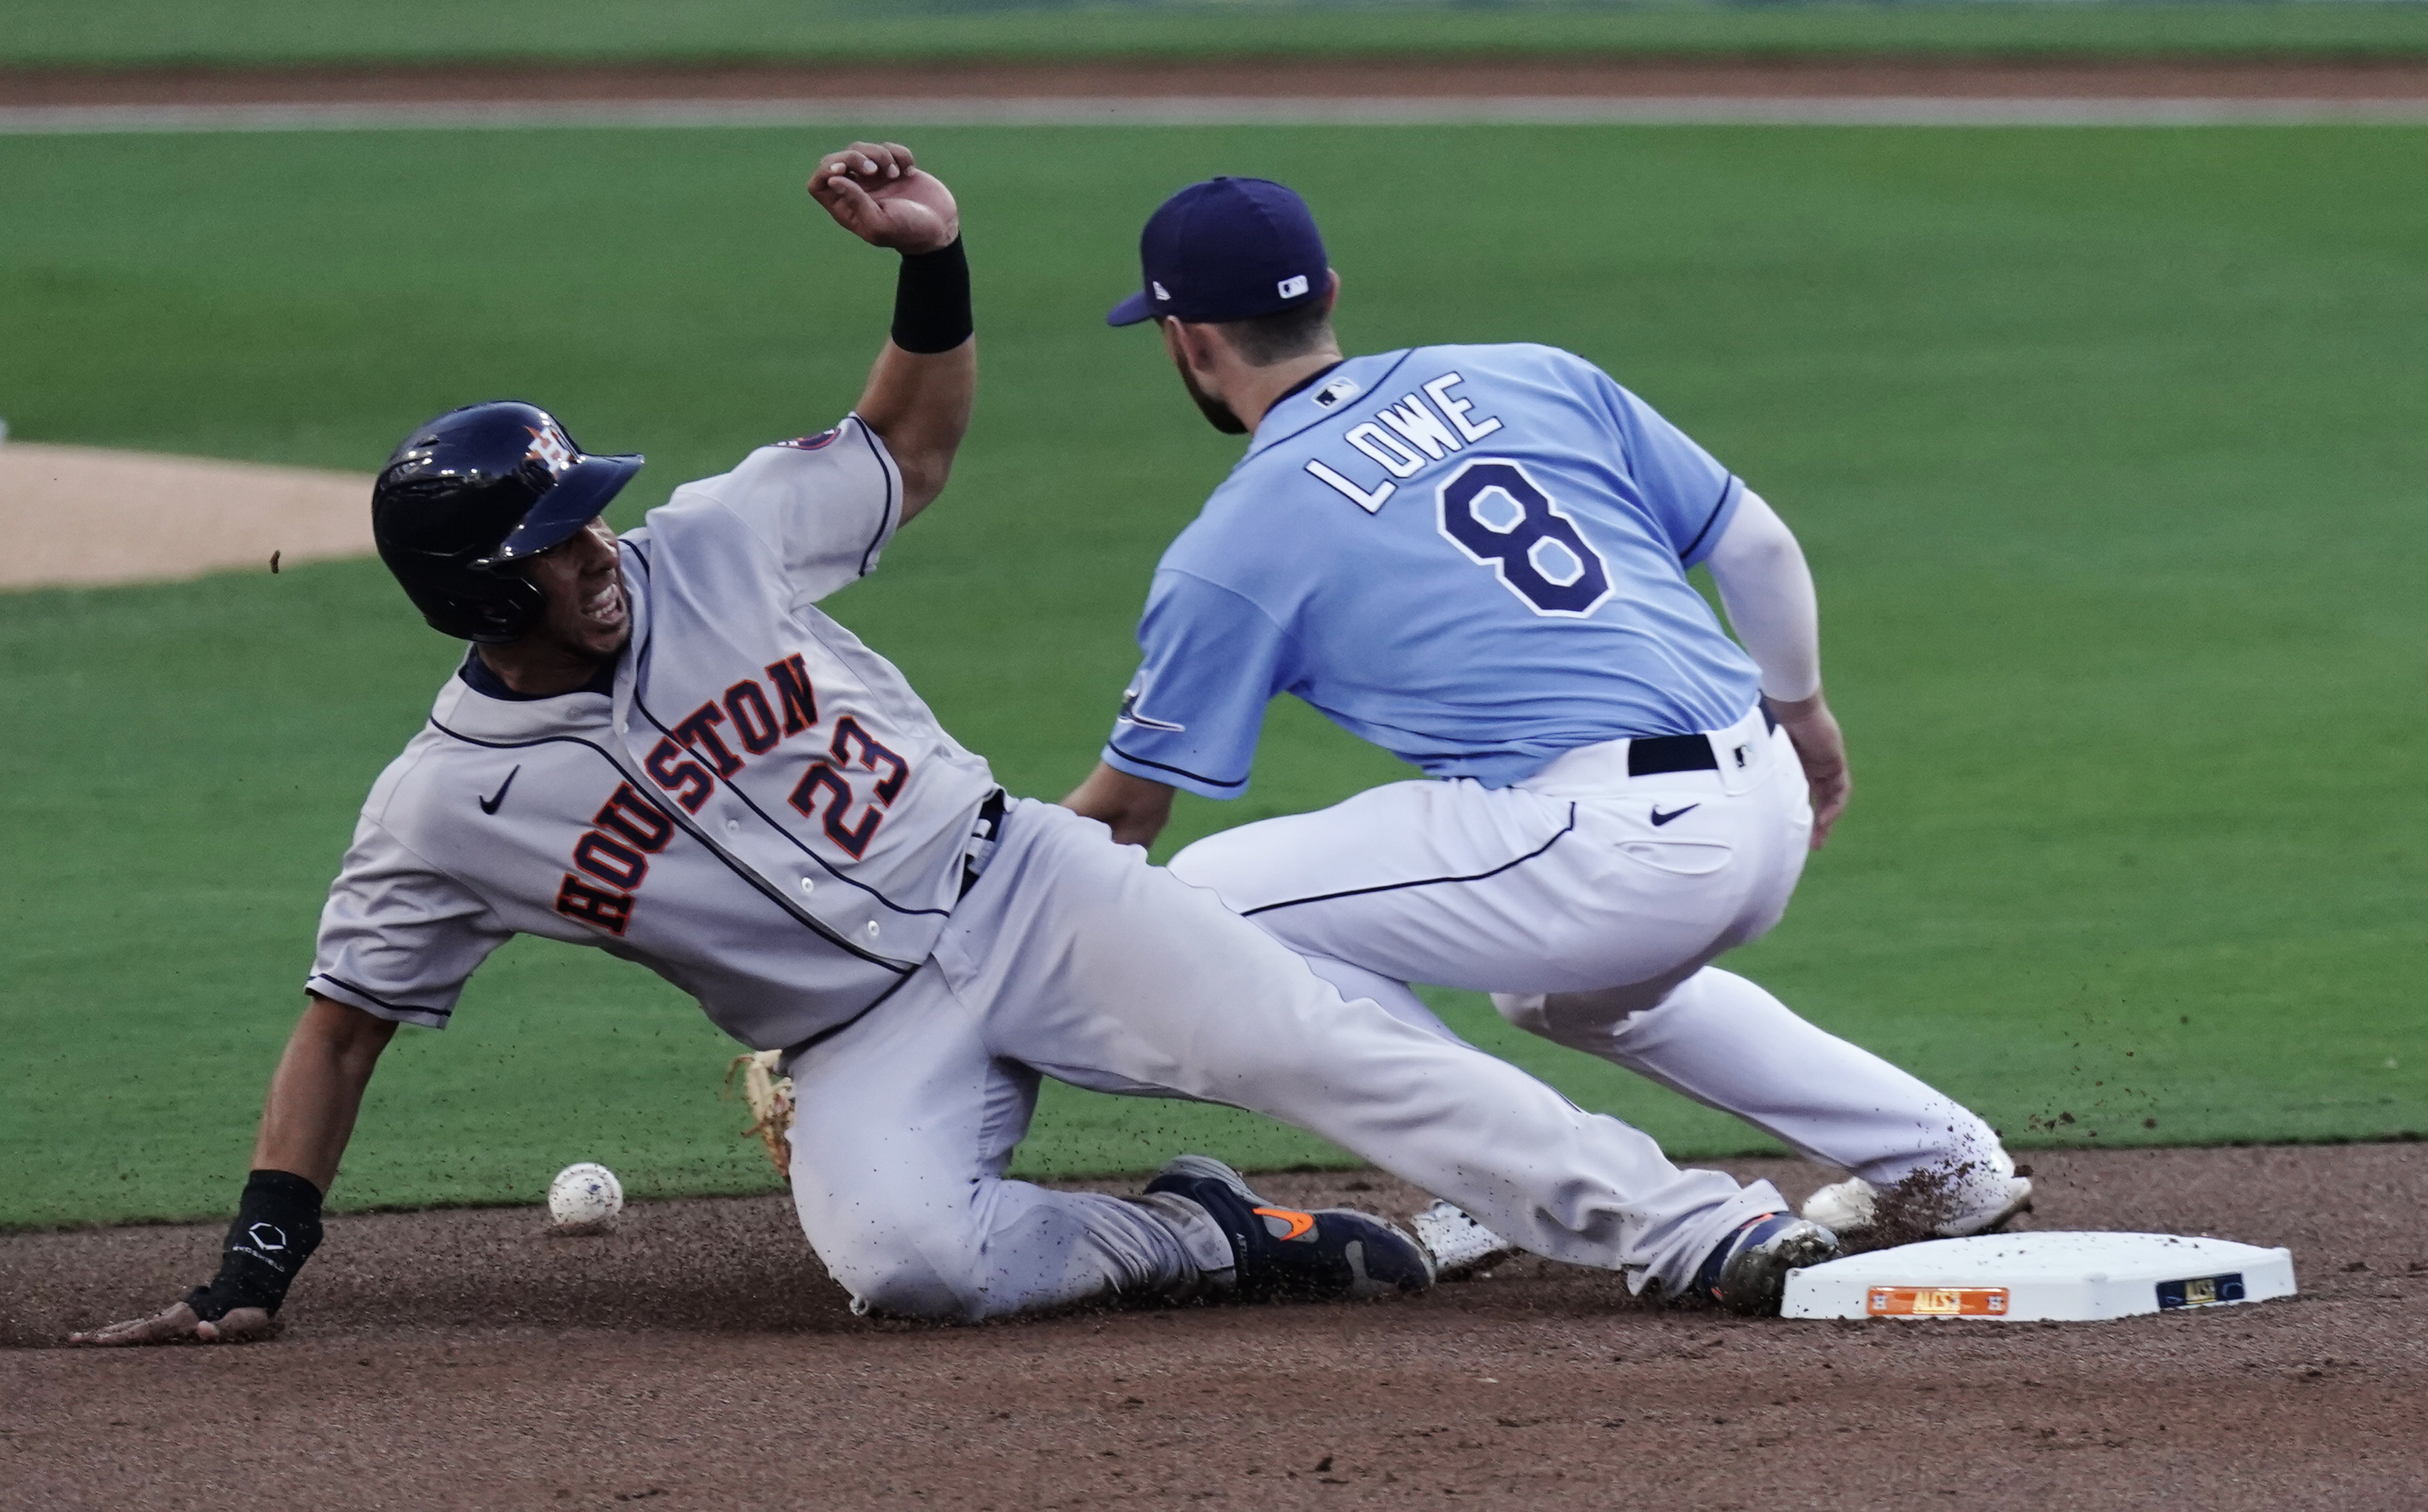 houston astros vs tampa bay rays alcs game 7 free live stream score odds time tv channel how to watch mlb playoffs online oregonlive com https www oregonlive com mlb 2020 10 houston astros vs tampa bay rays alcs game 7 free live stream score odds time tv channel how to watch mlb playoffs online html